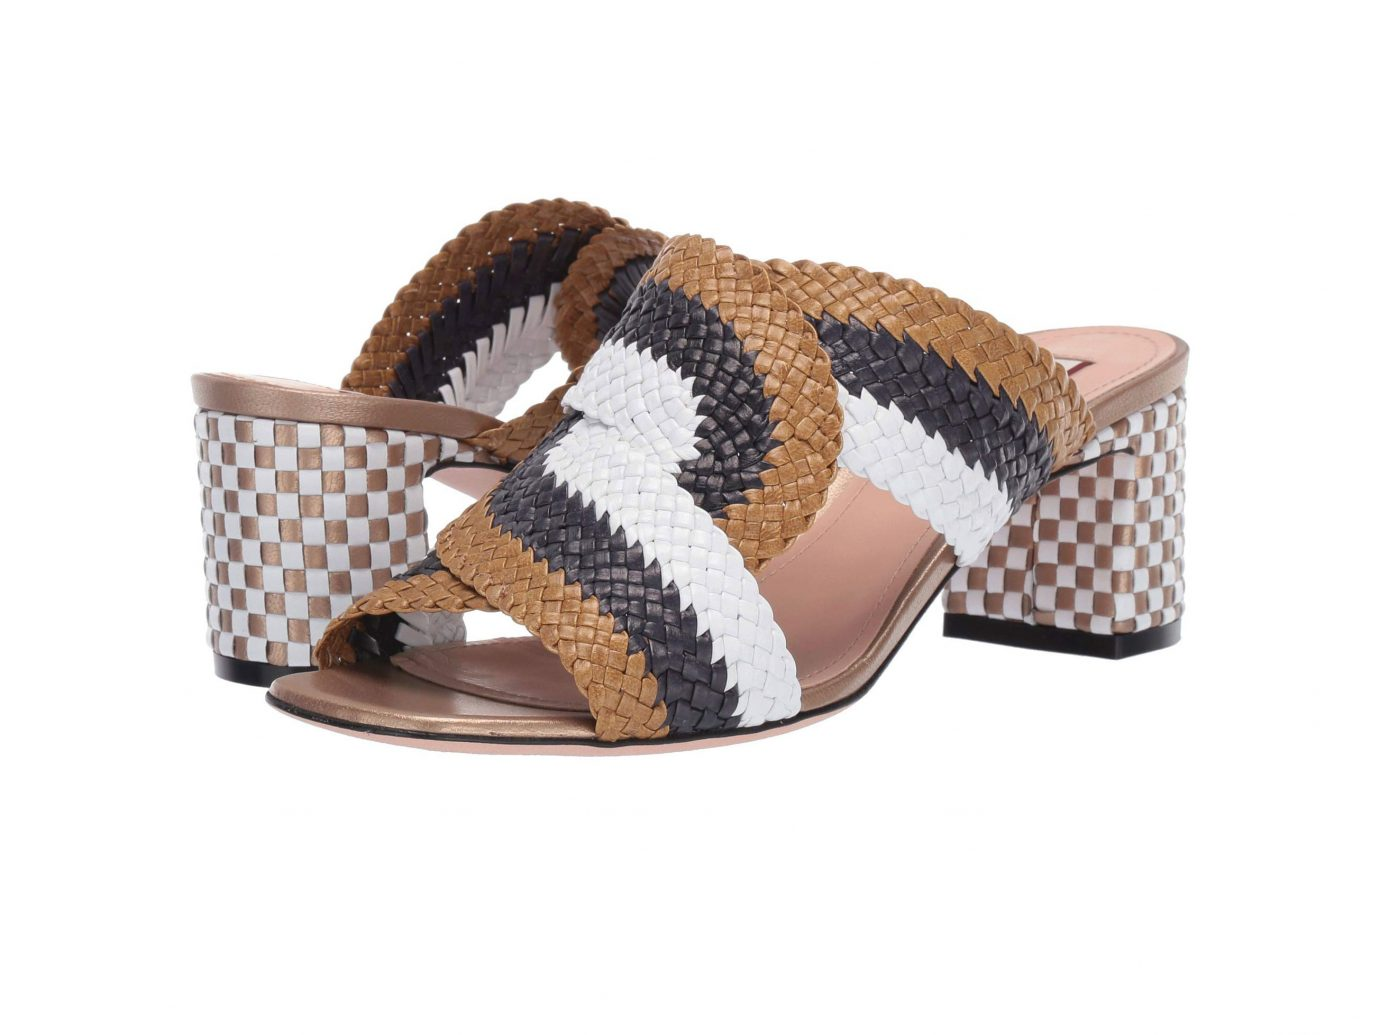 Bally Ianna Heeled Sandal